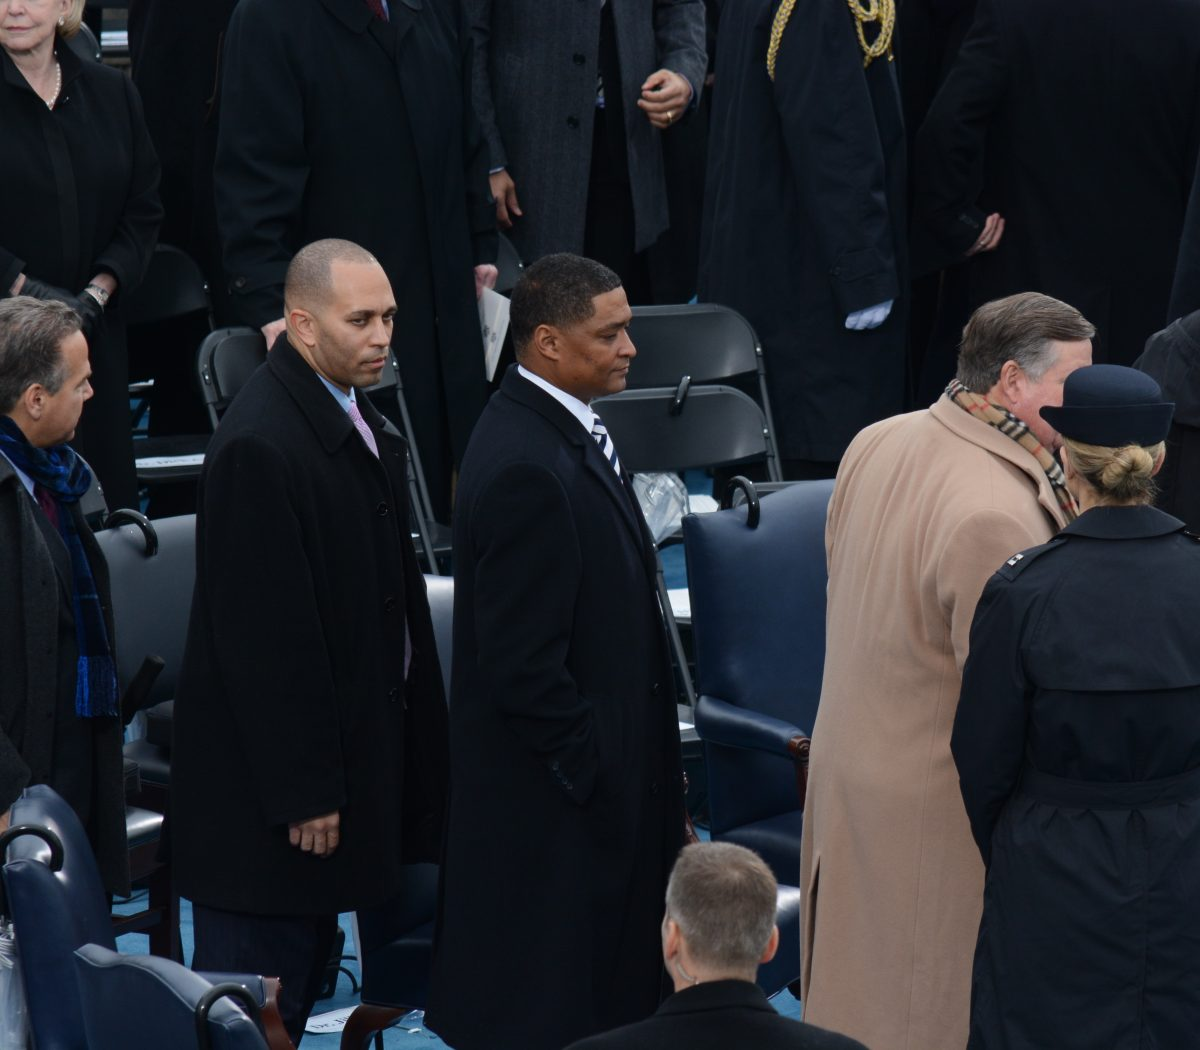 Congressman Cedric L. Redmond (D-La.) arrives at the 58th Presidential Inauguration on January 20, 2017. /Photo by Roy Lewis